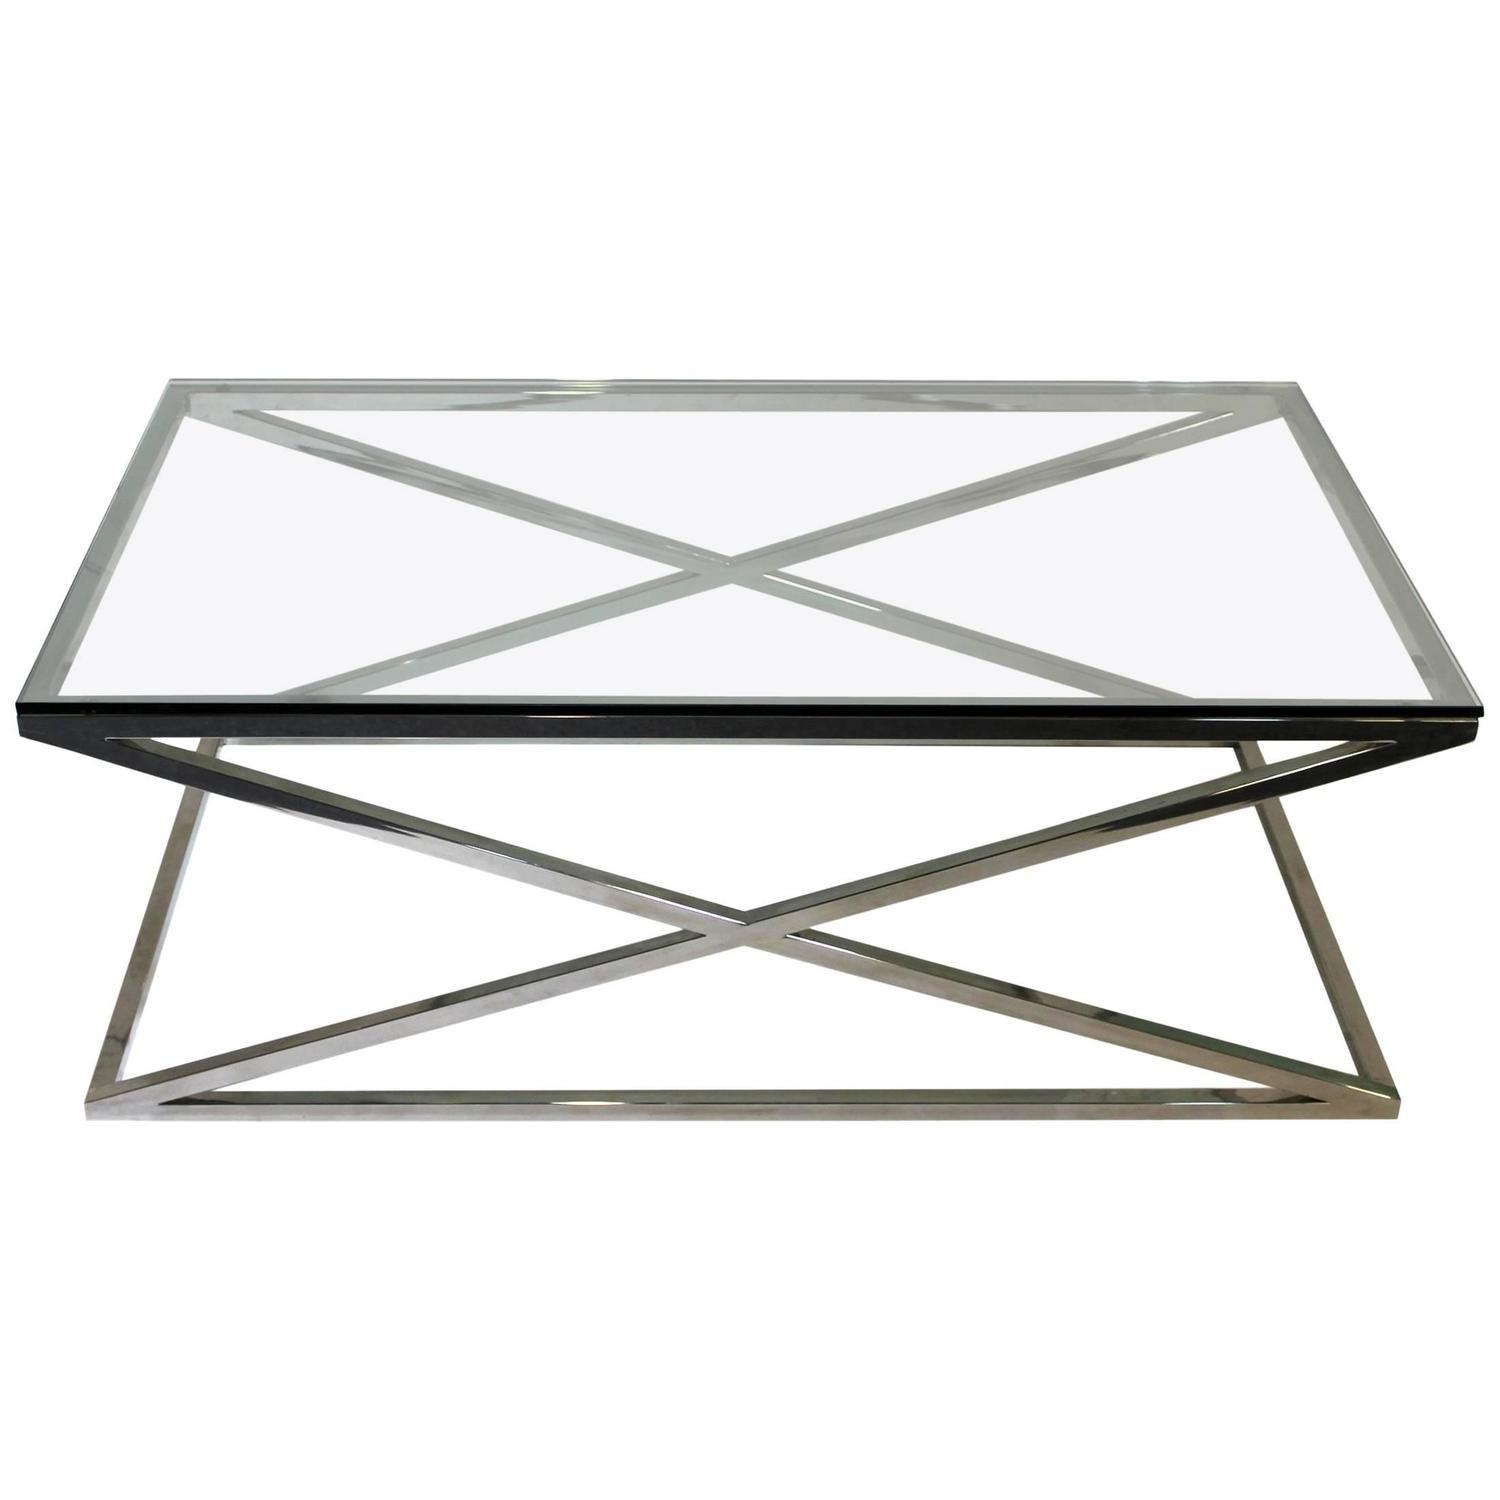 Mid Century Modern Rectangular Glass Coffee Table Chrome X Base at